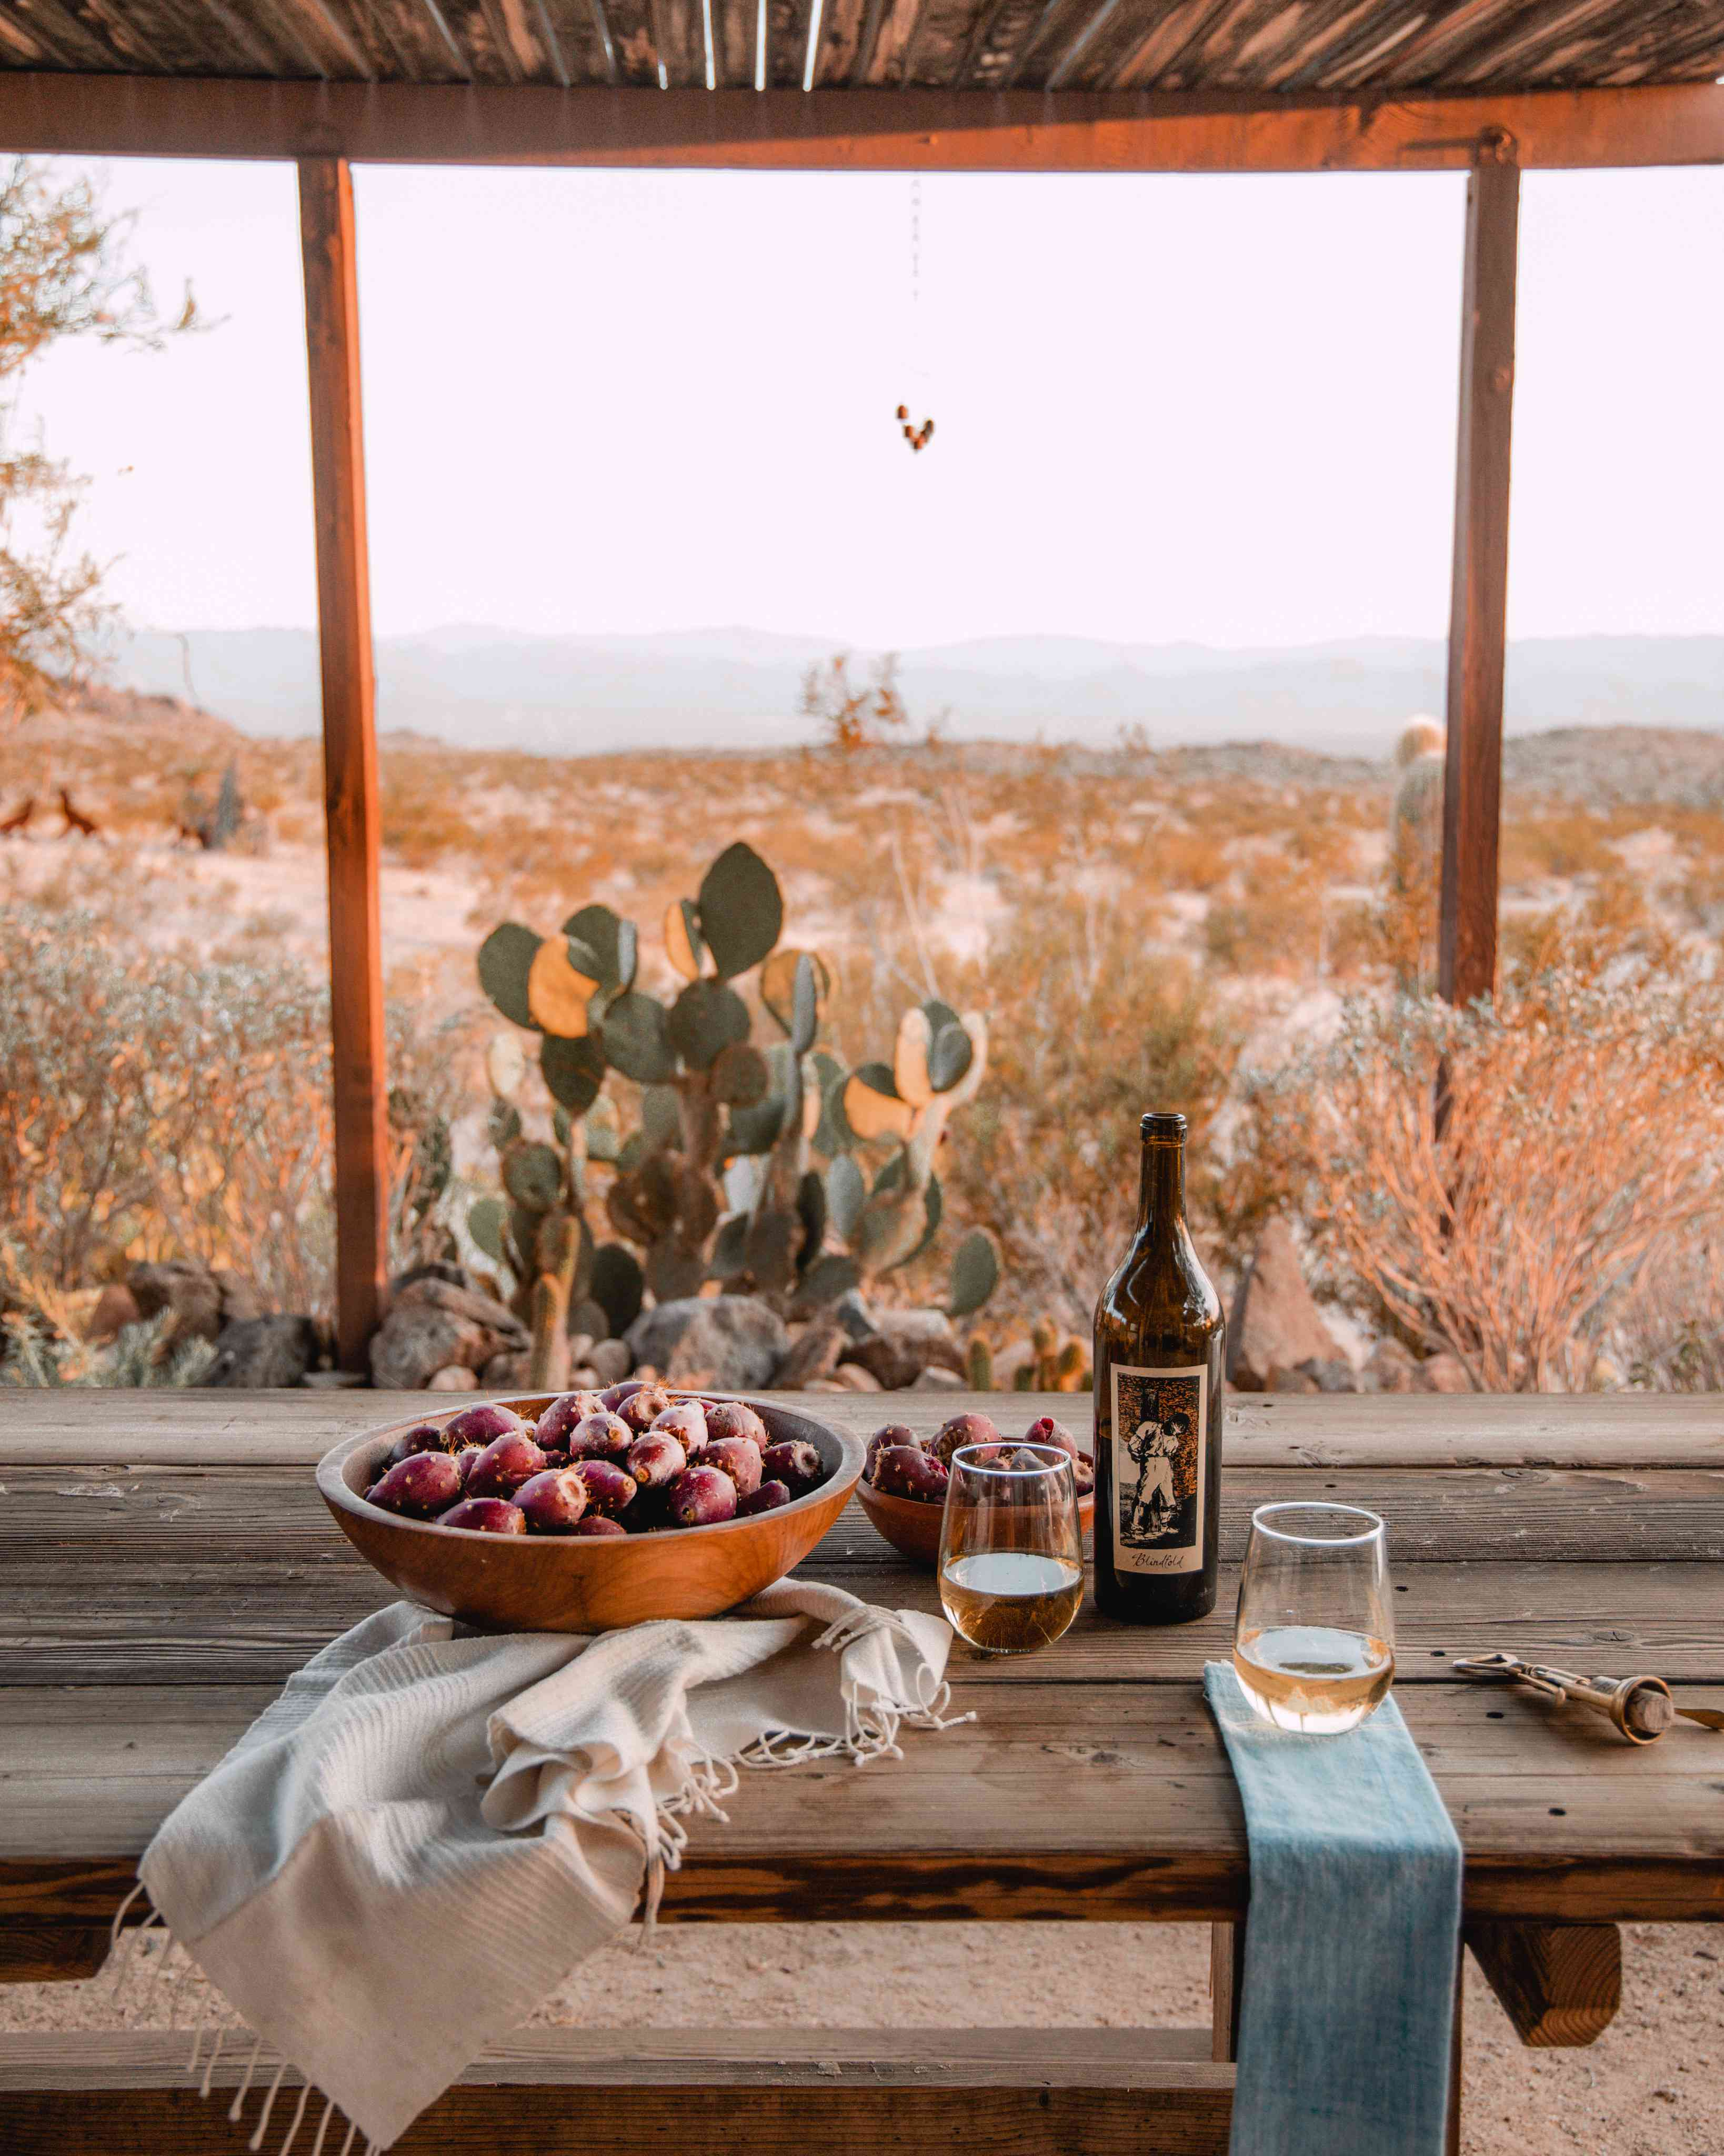 Outdoor dining at The Joshua Tree House